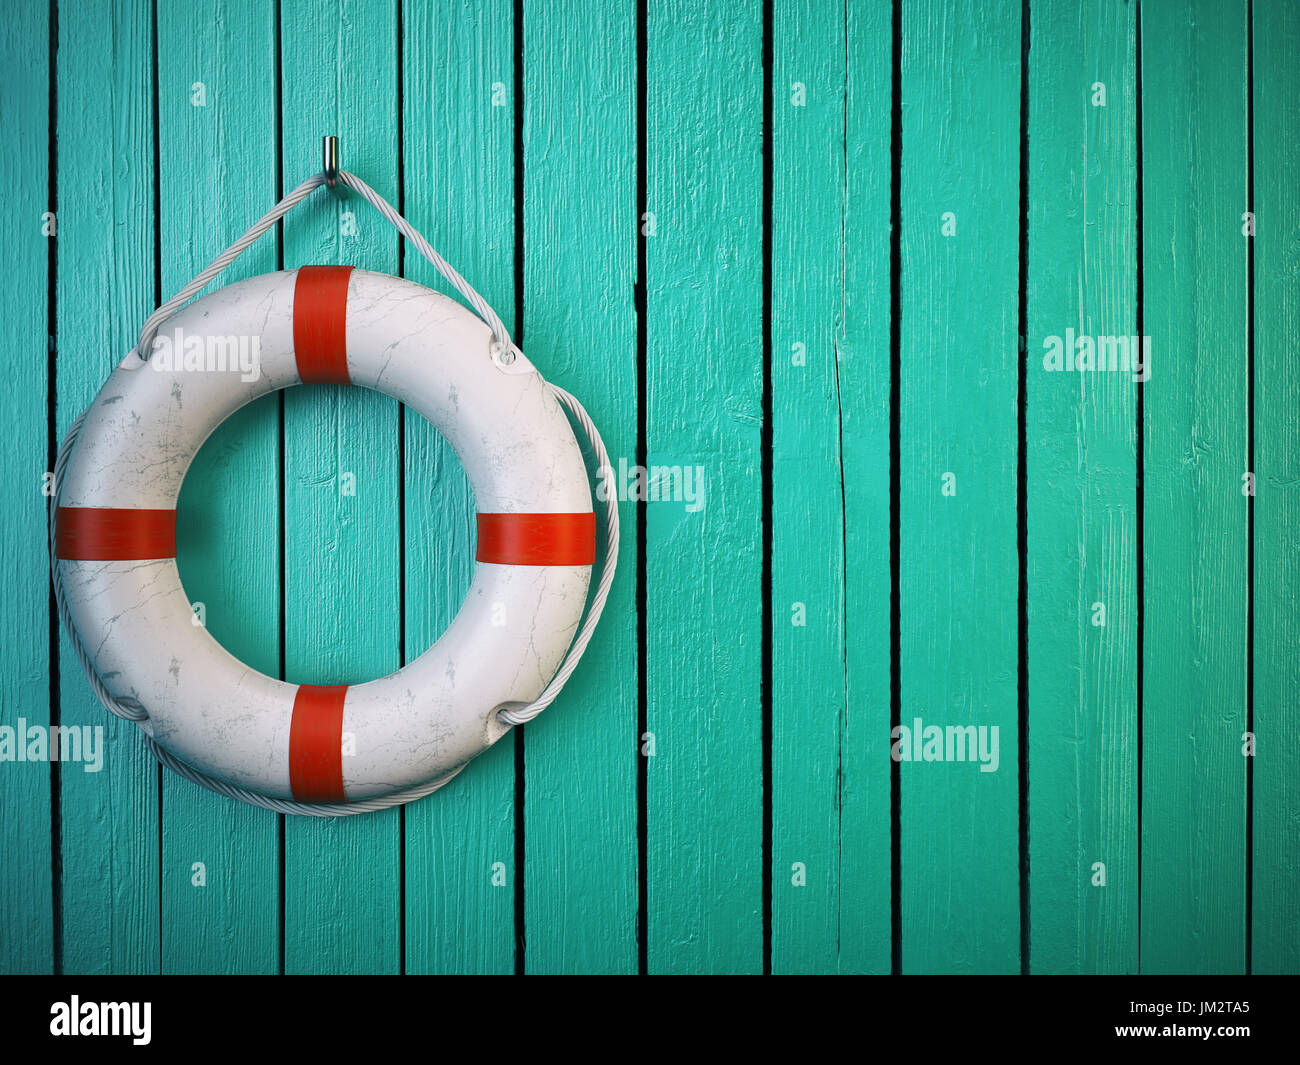 Life belt or rescue ring on wooden wall. Salvation, protection and security concept. 3d illustration - Stock Image